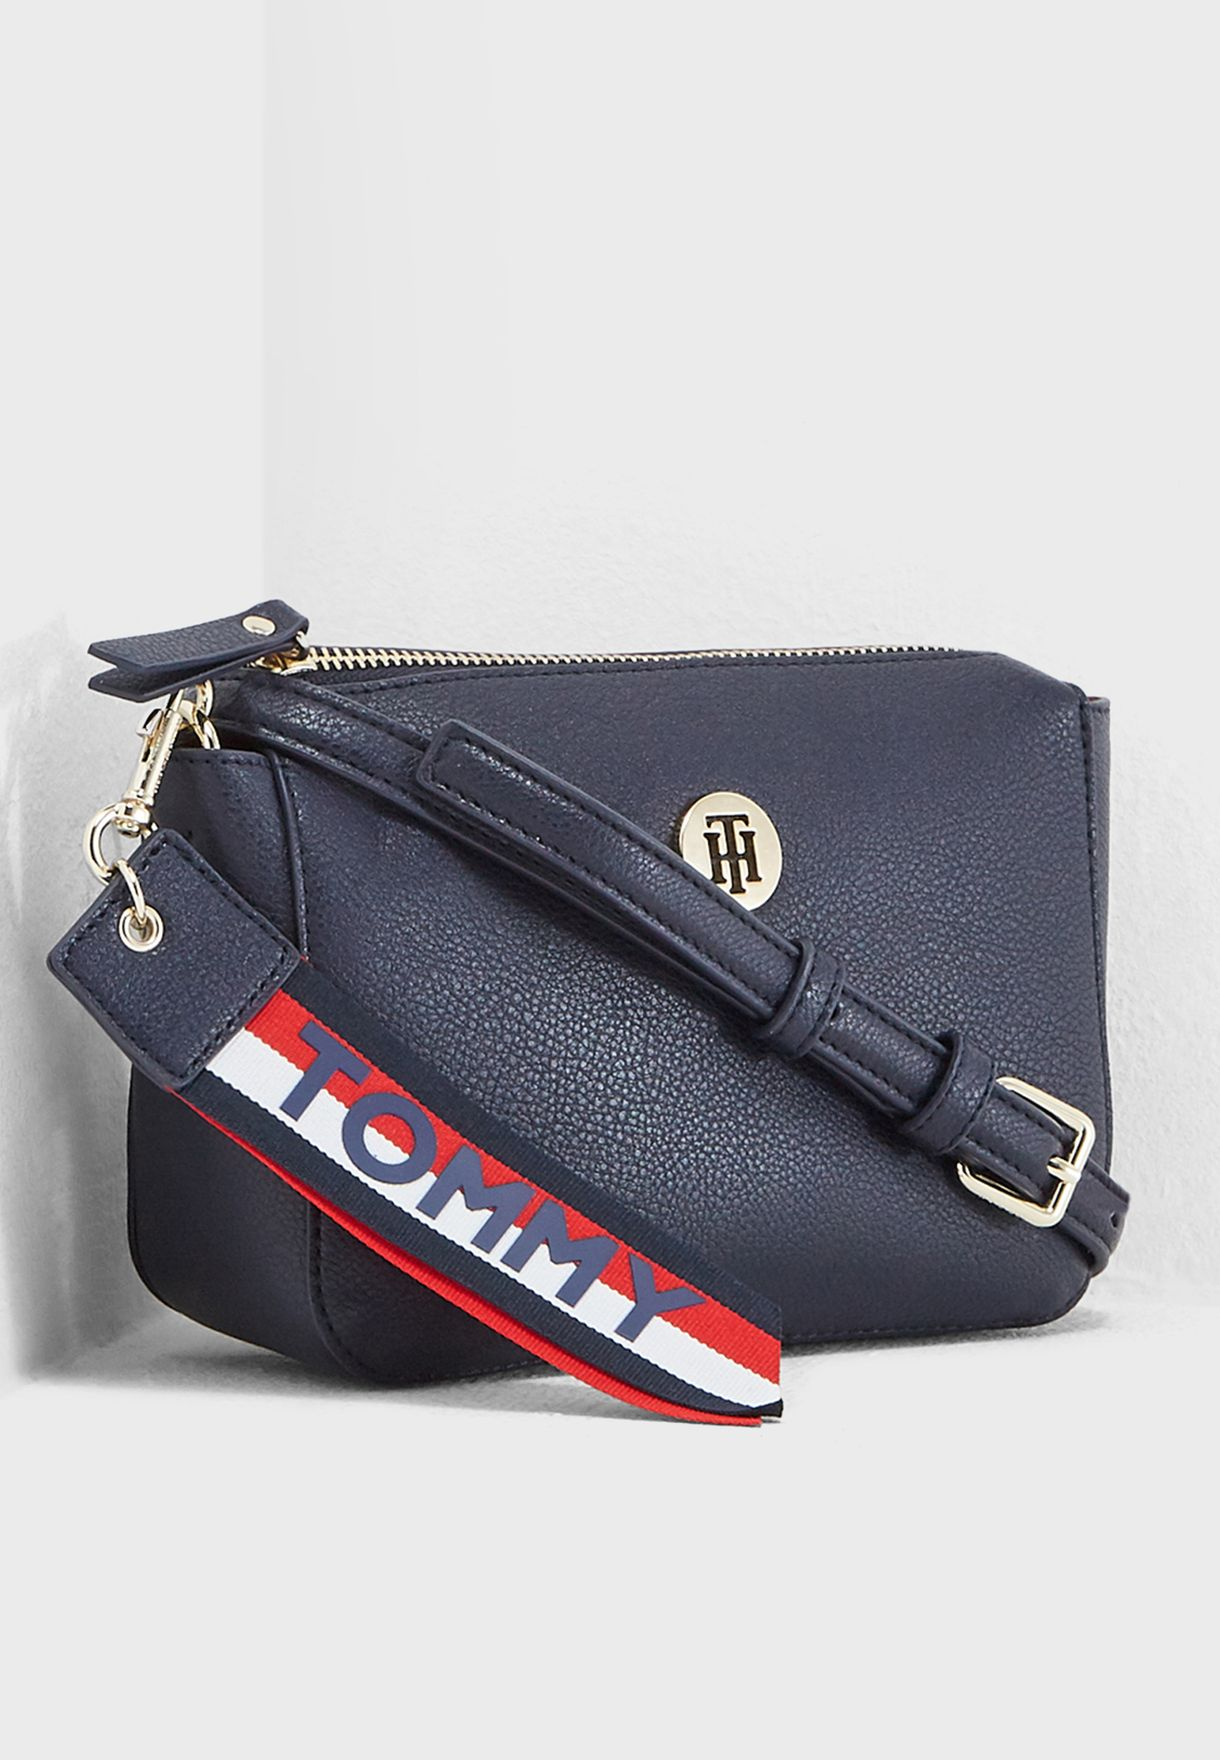 6febdb298e6 Shop Tommy Hilfiger navy Charming Flap Crossbody AW0AW05689 for ...